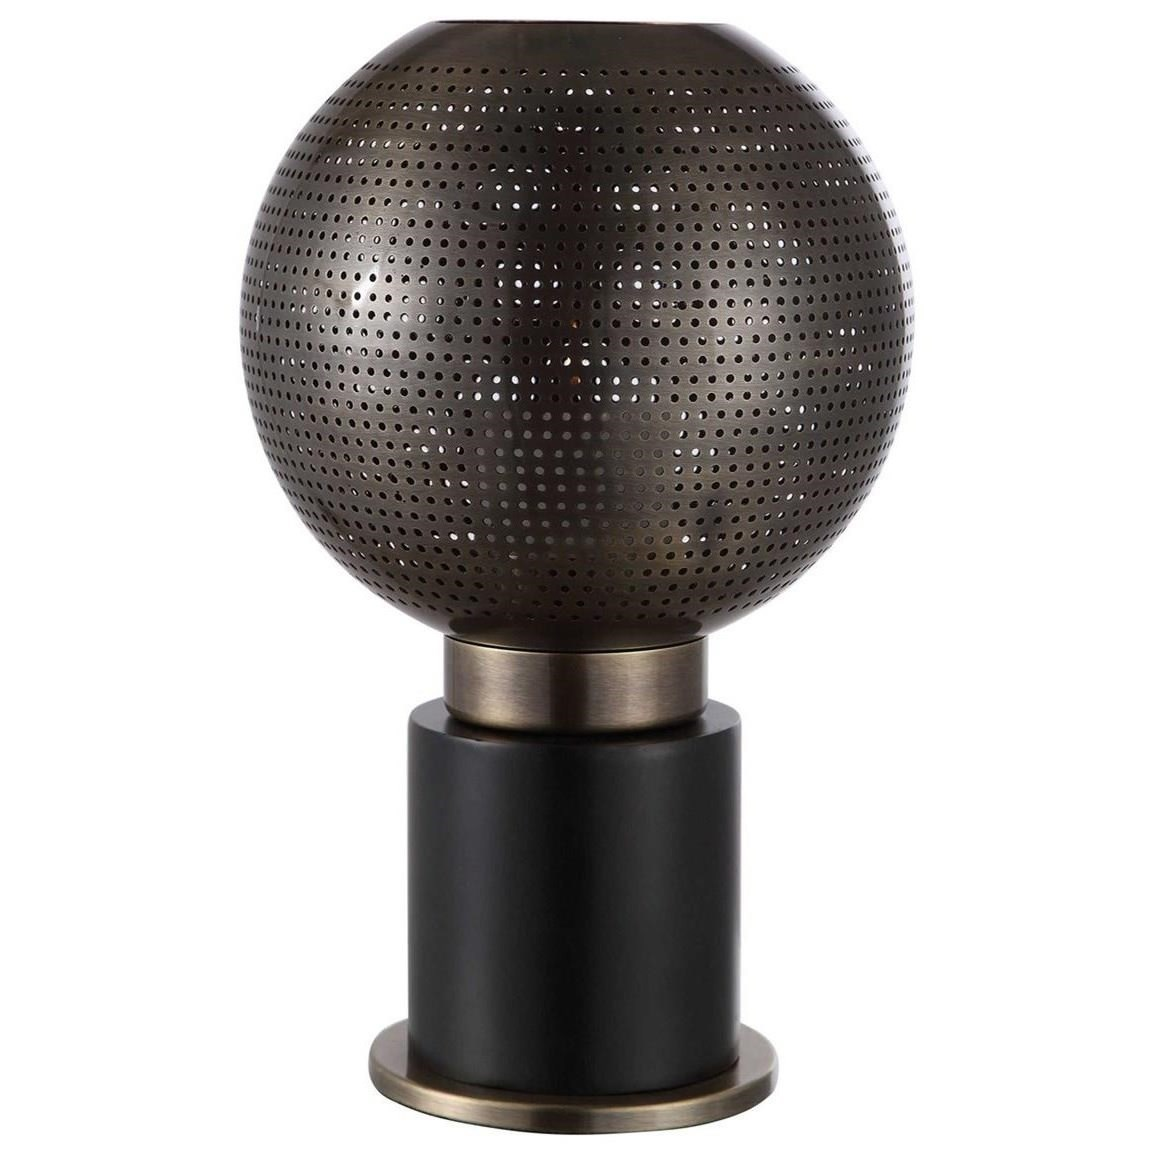 Accessories - Candle Holders Branham Bronze Globe Candleholder by Uttermost at Suburban Furniture